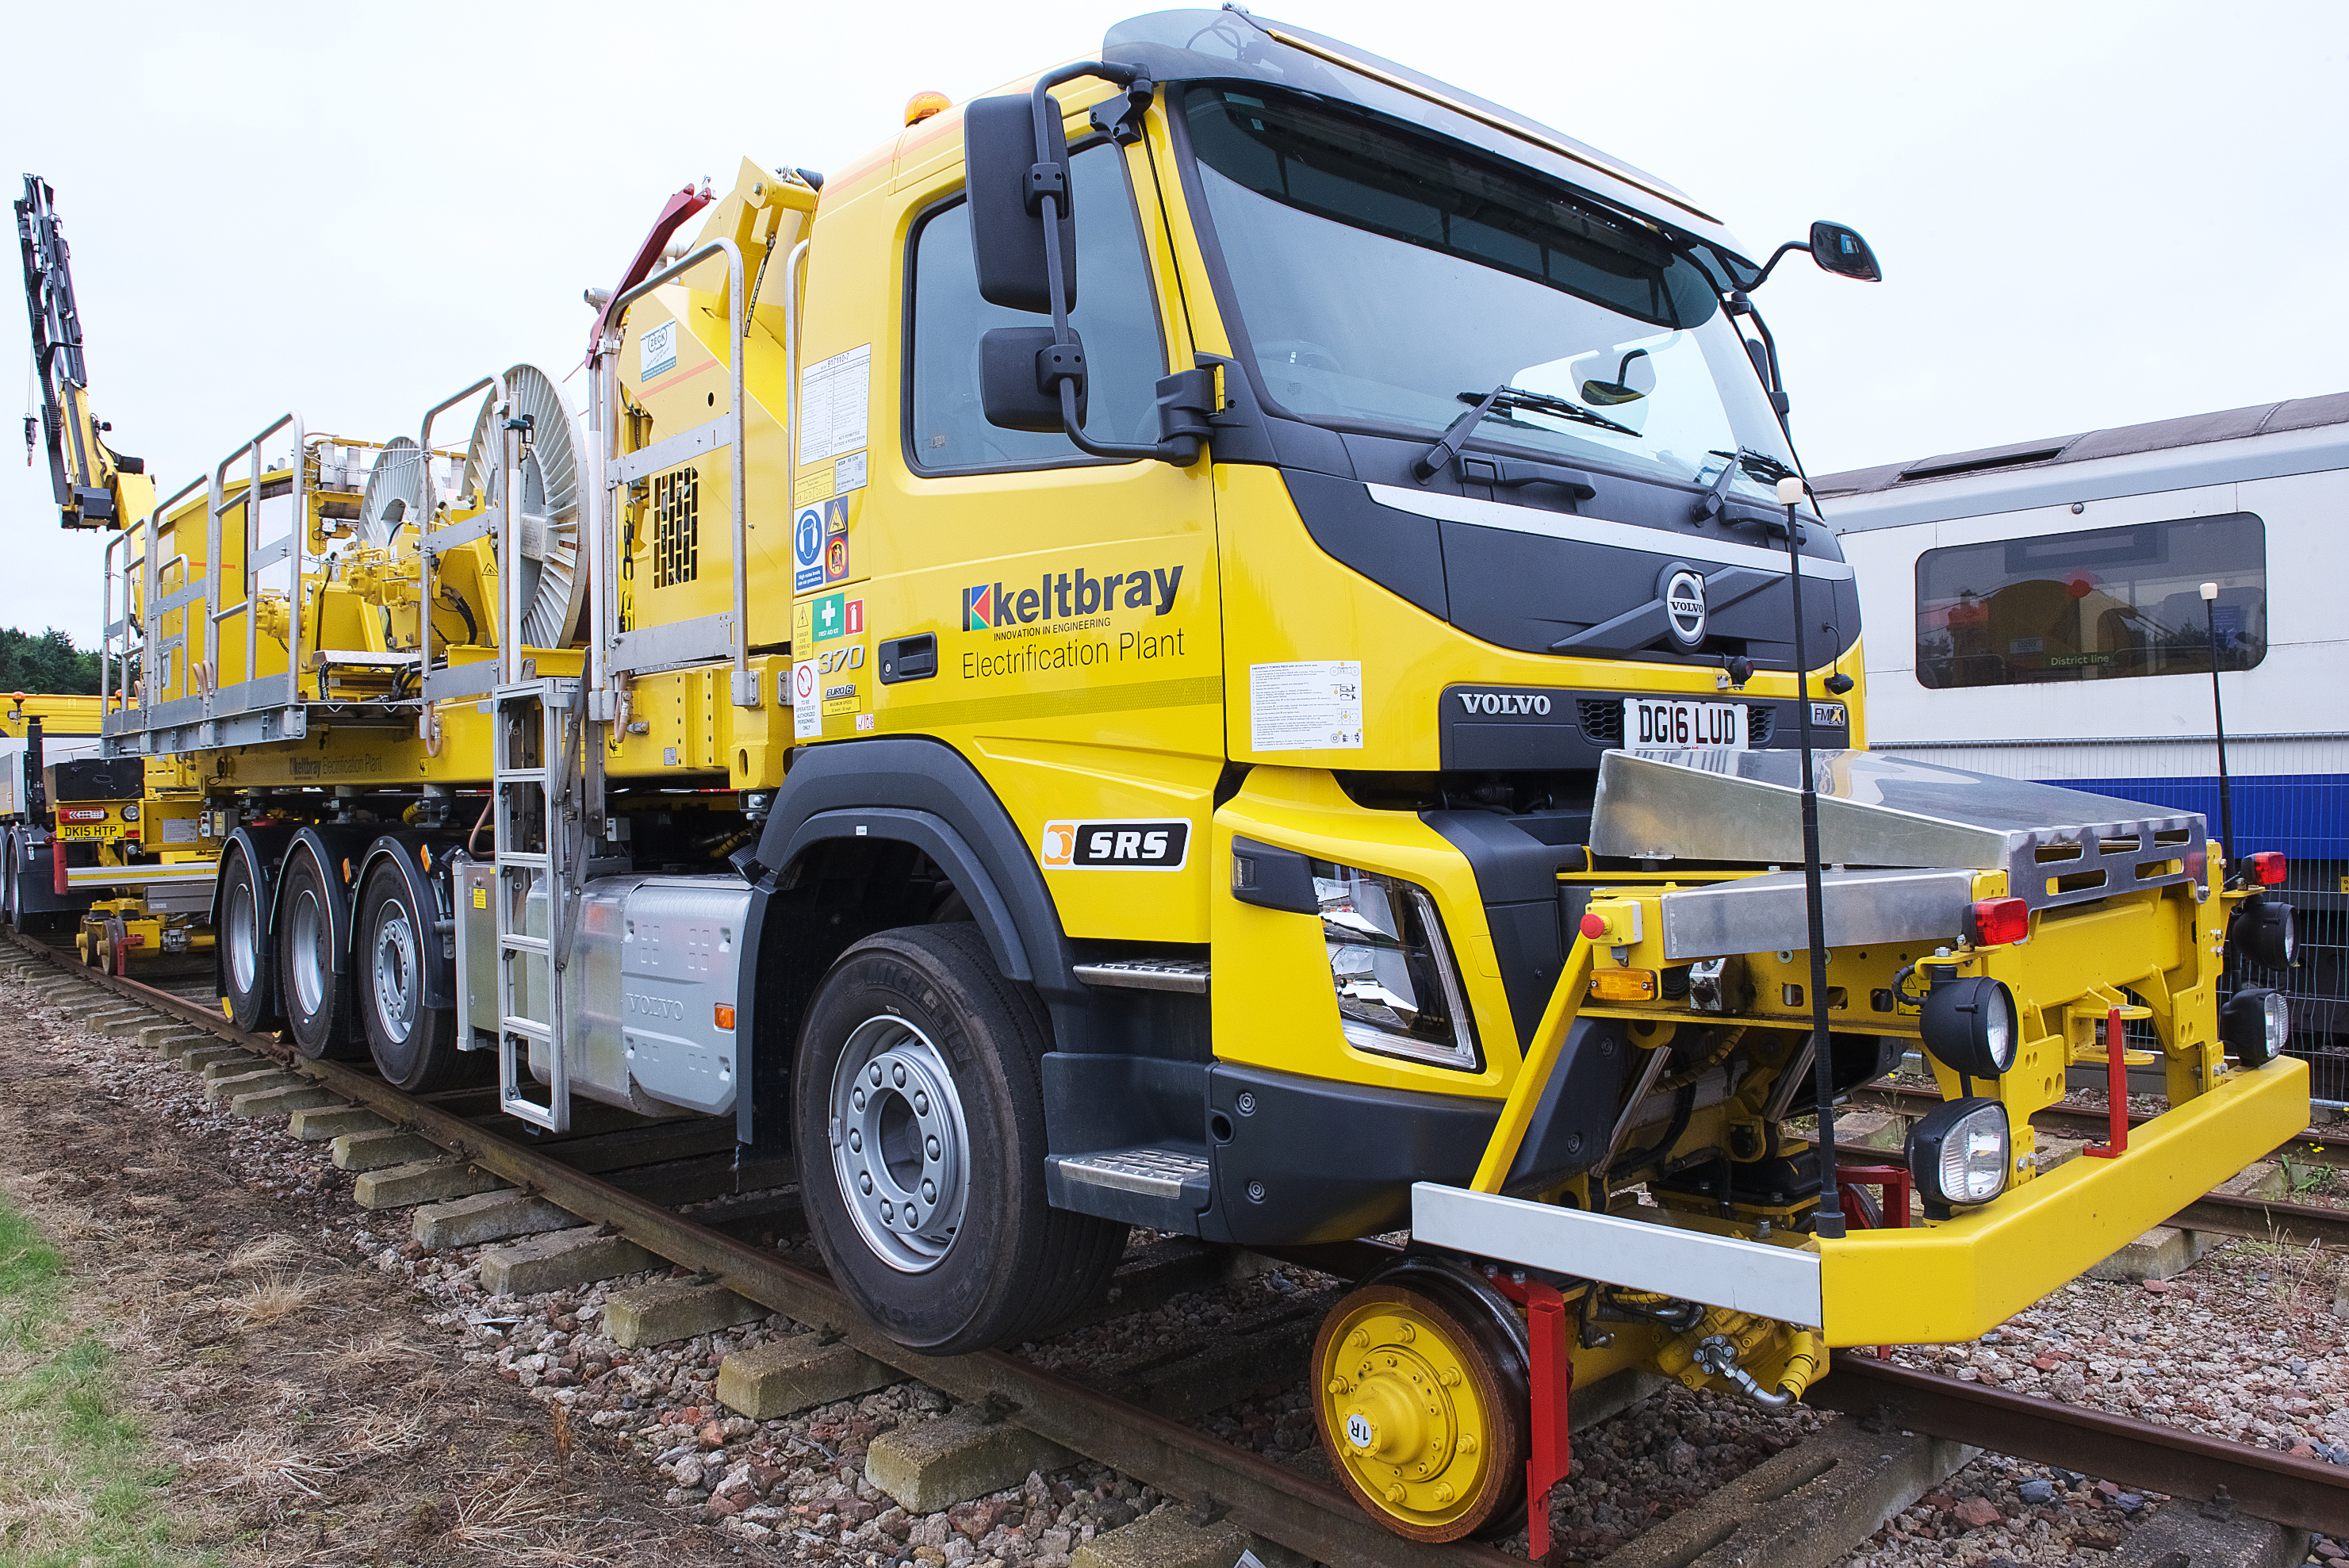 SRS Road-Rail Vehicles: Unbeatable Mobility on the Tracks